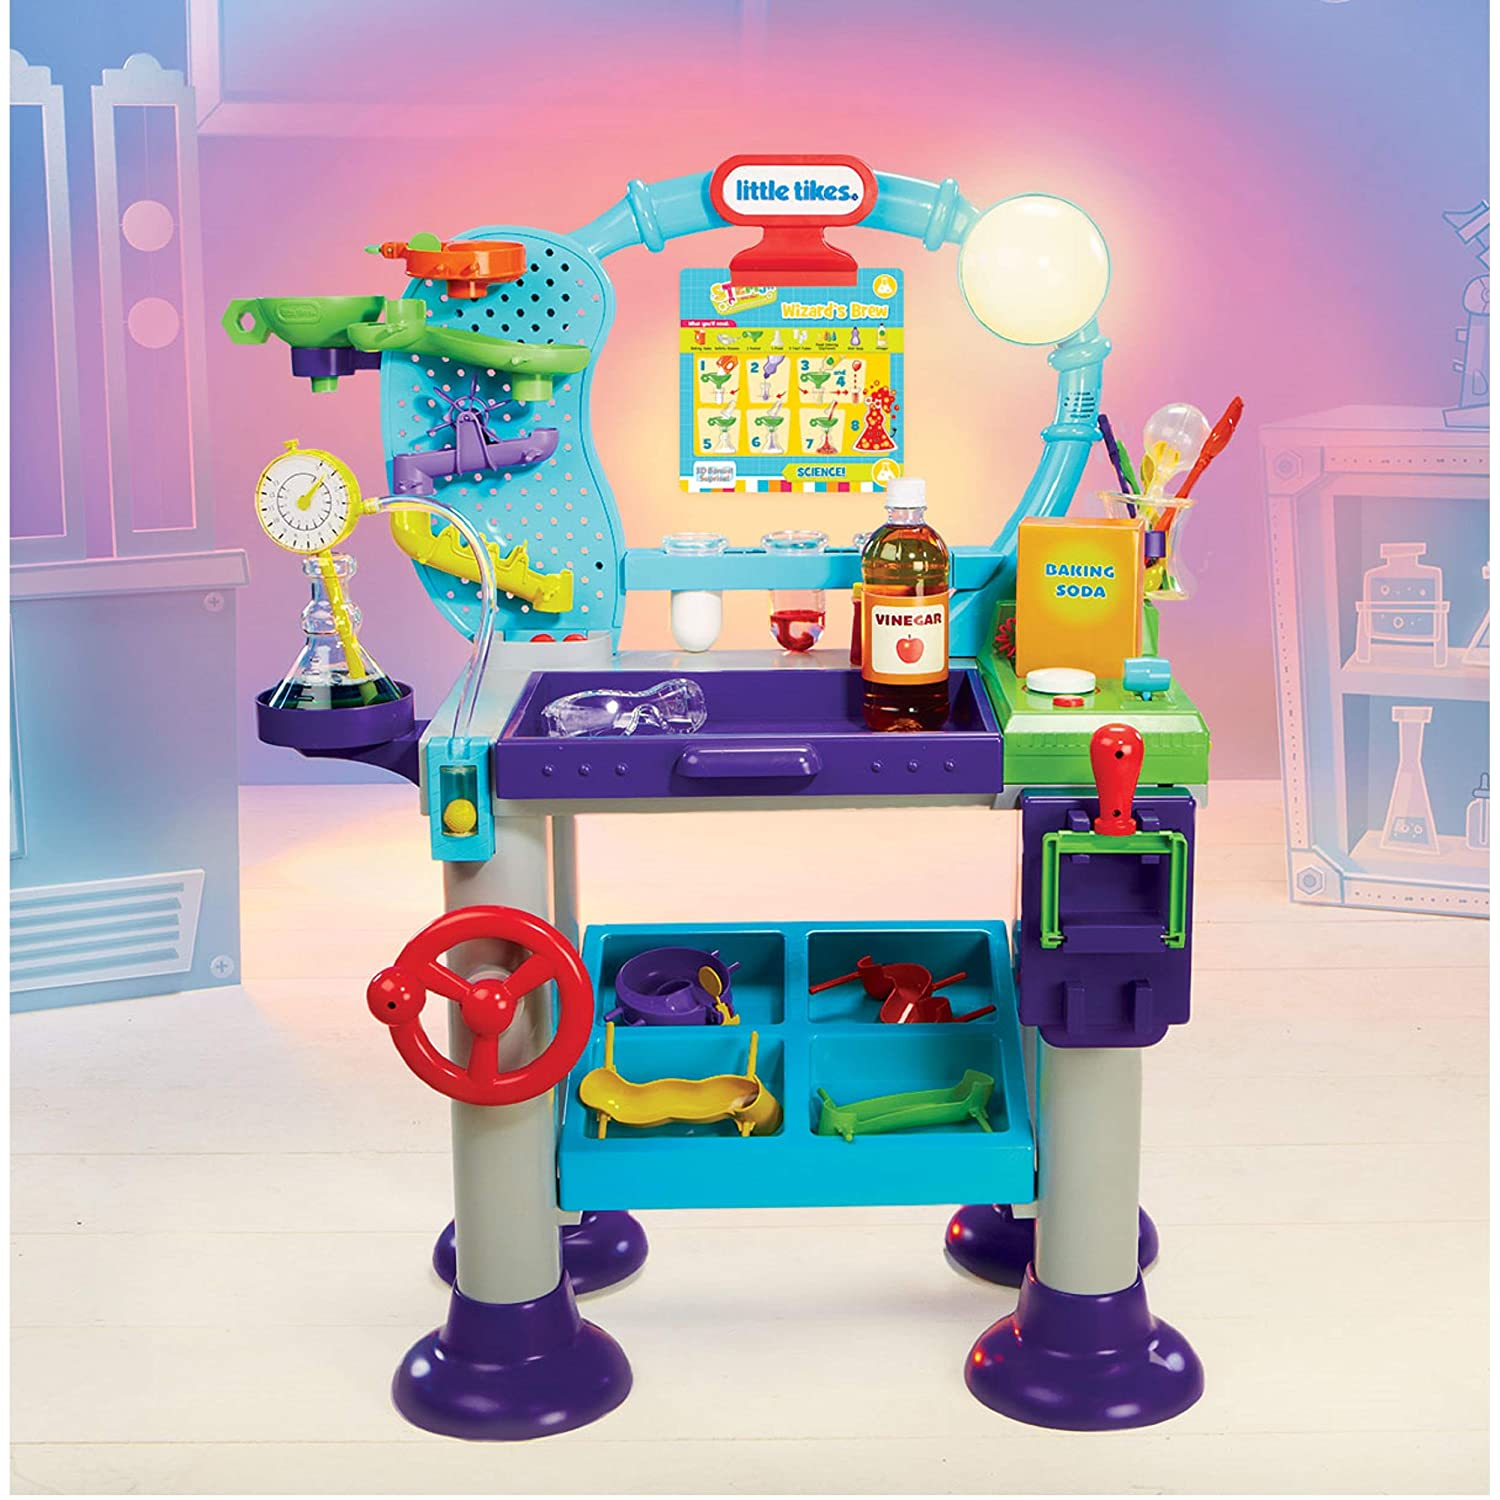 Little Tikes Stem Jr. Wonder Lab